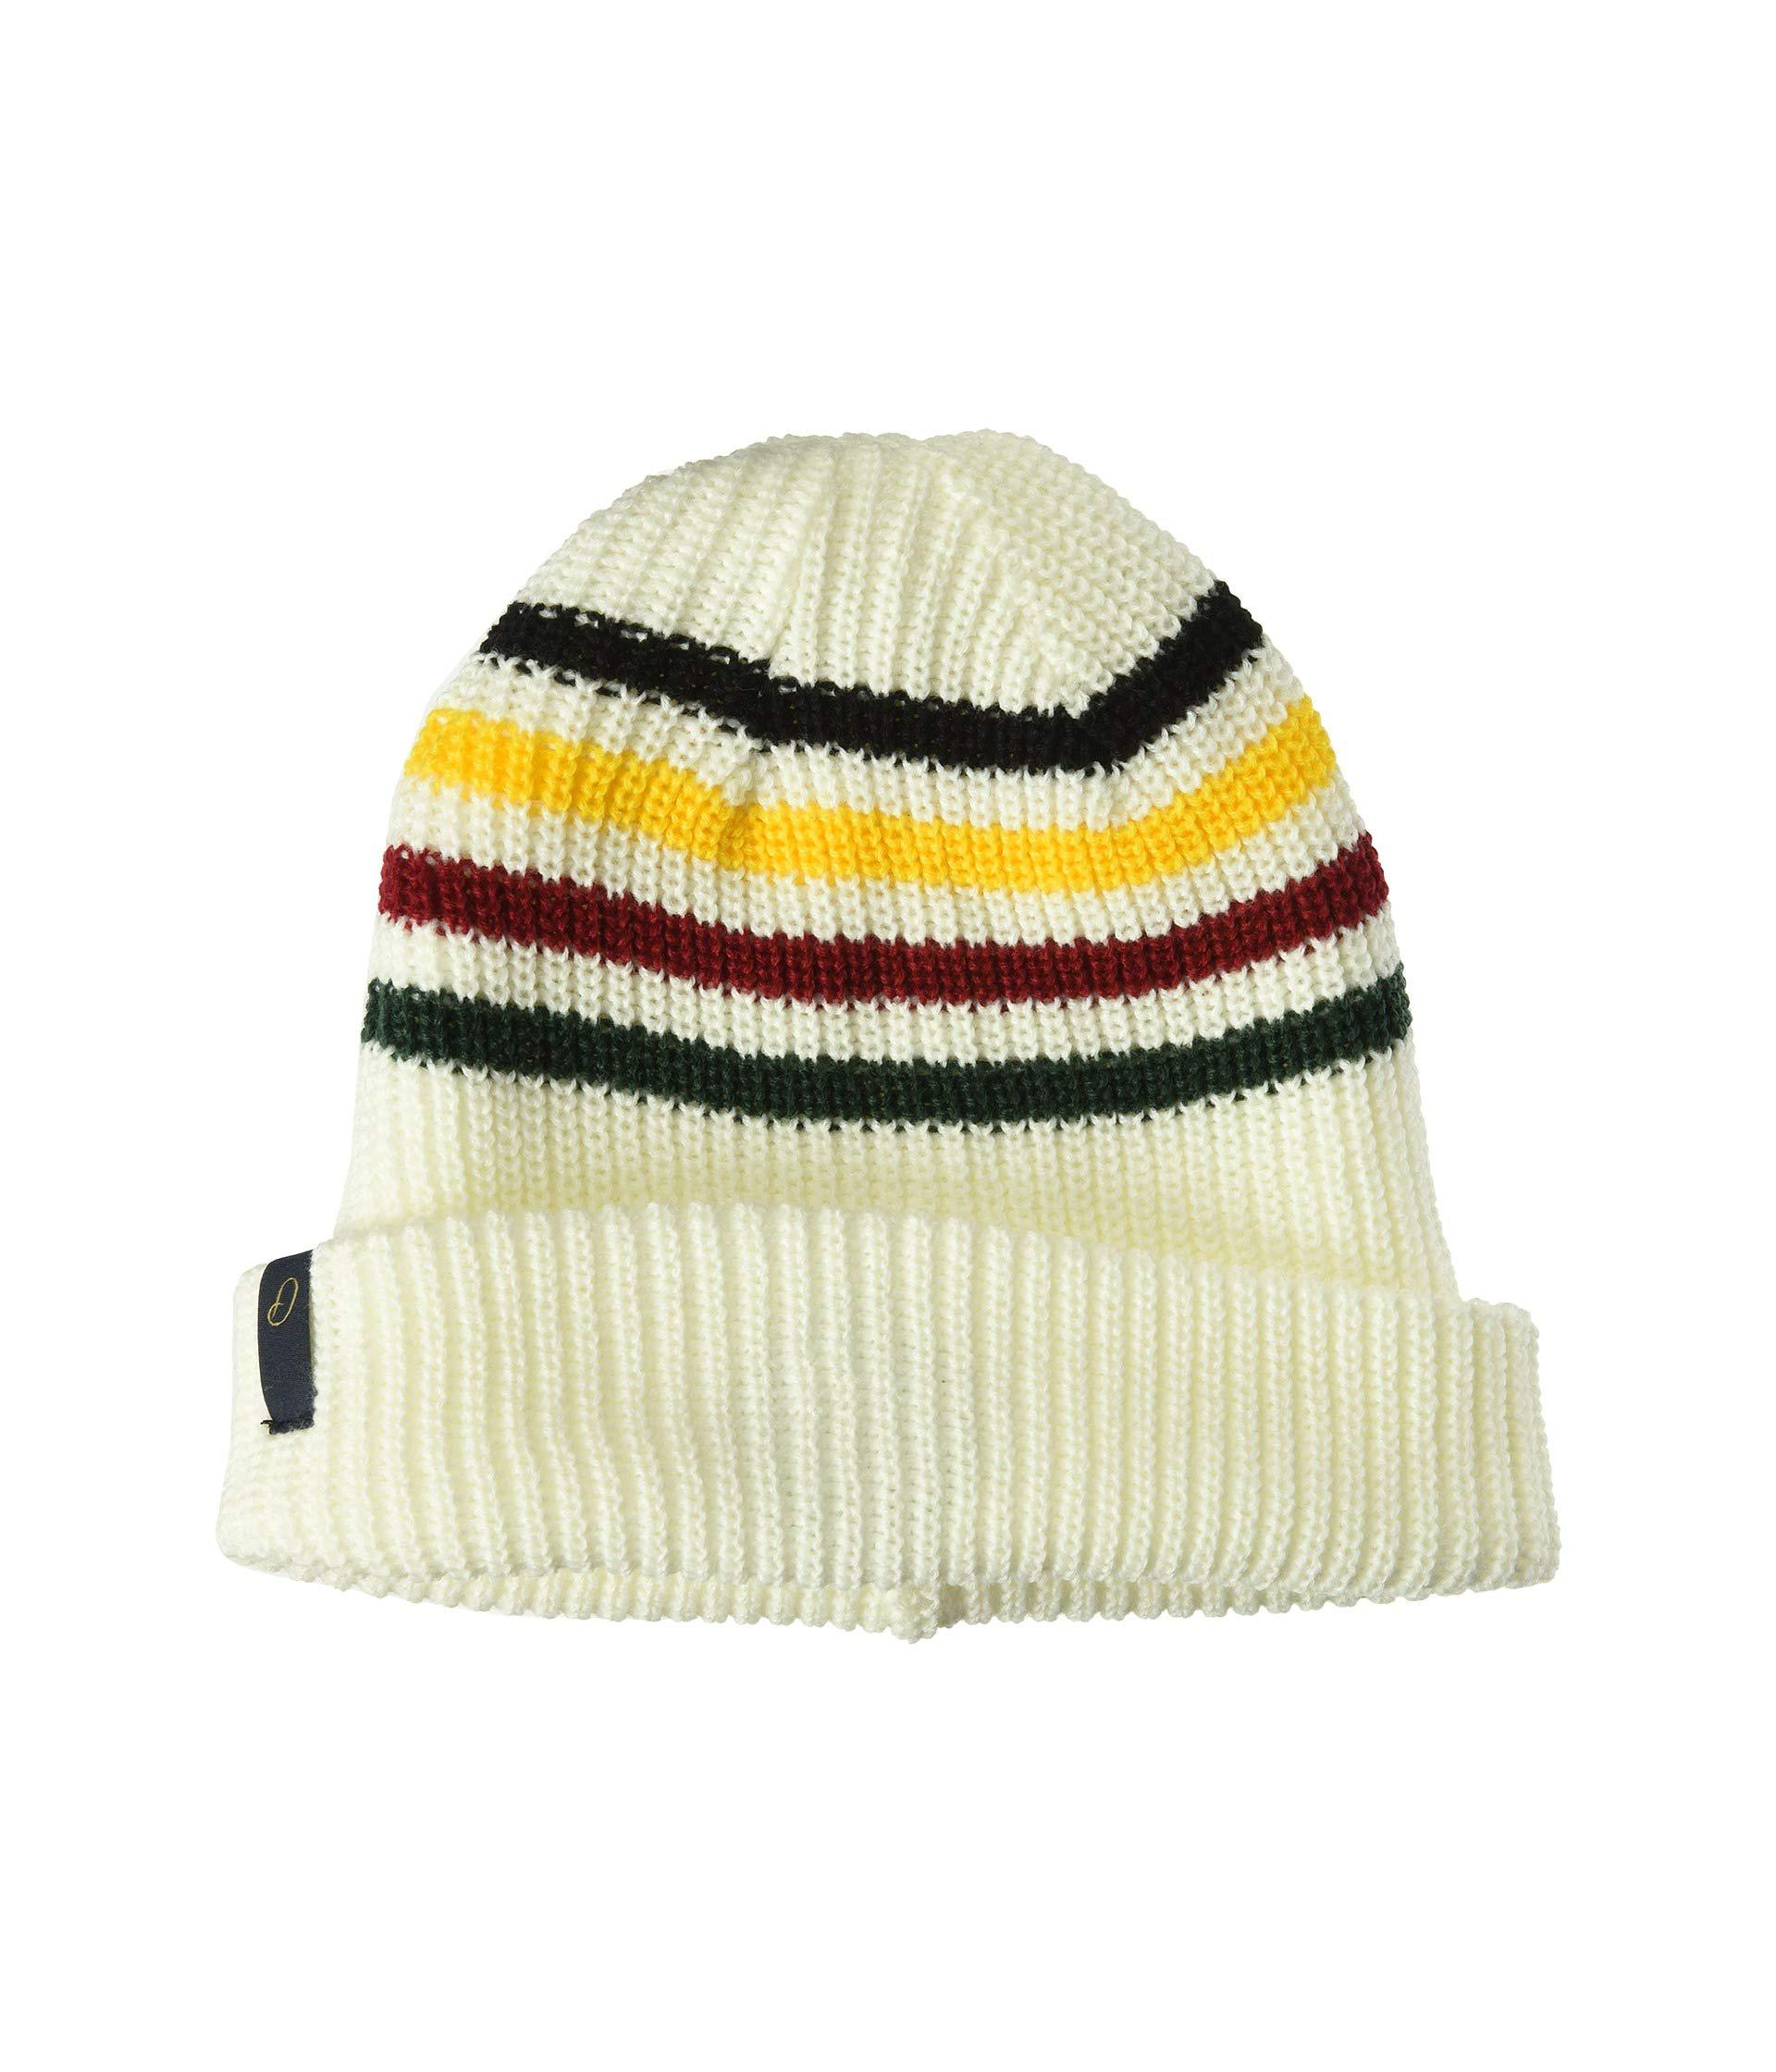 2e6604a7c97 Lyst - Pendleton National Park Reversible Beanie (olympic Stripe ...